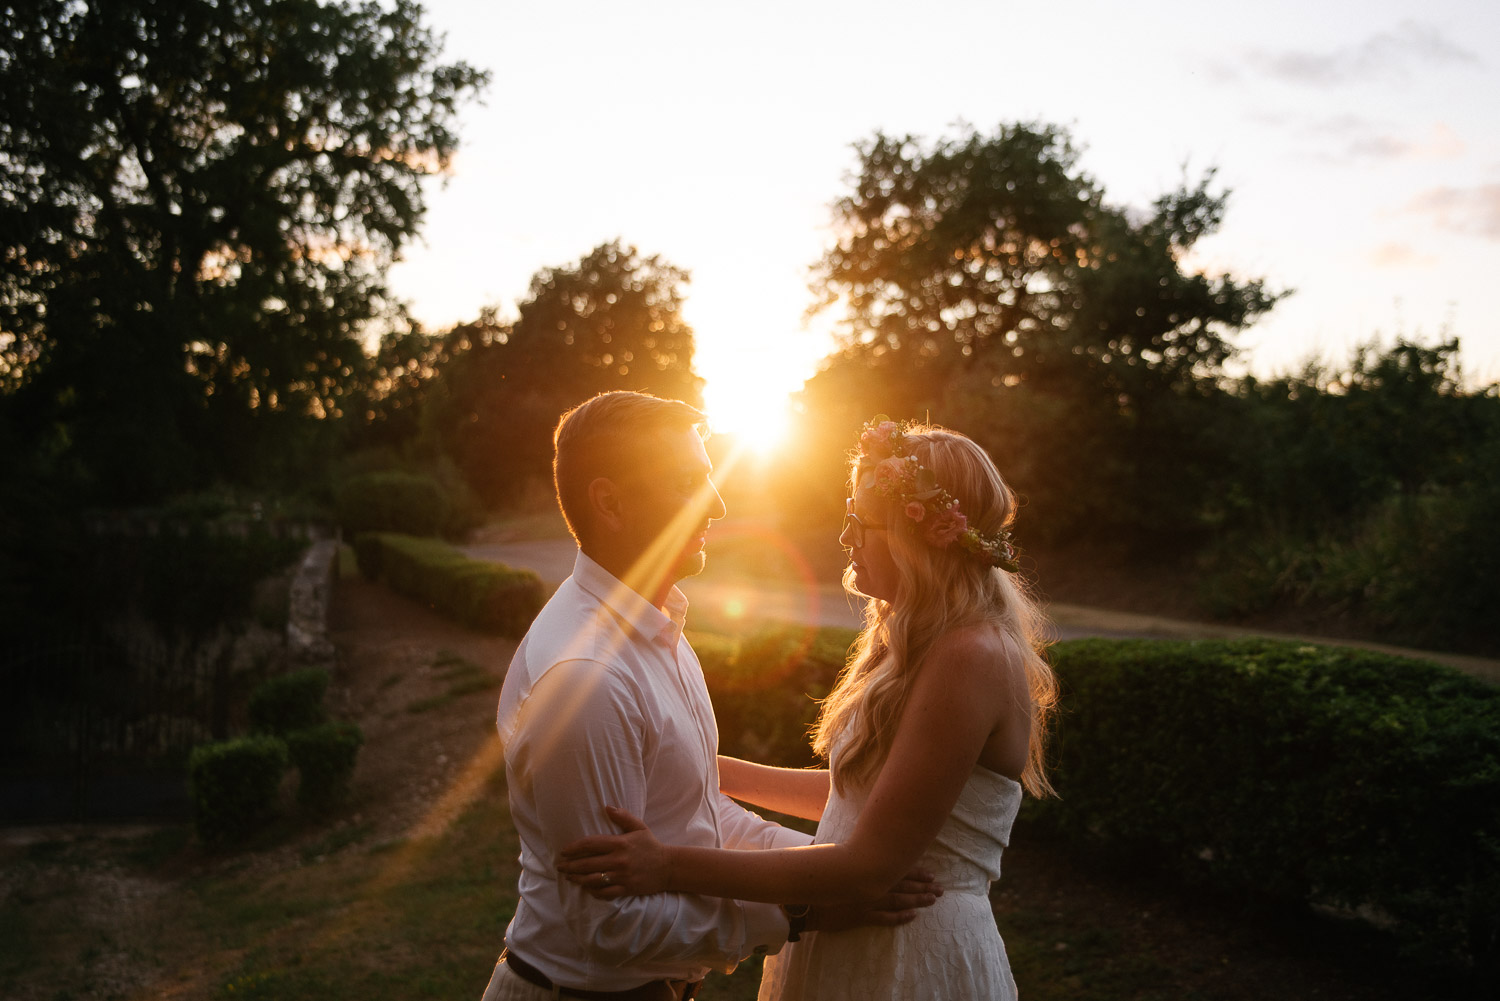 chateau_de_lisse_gers_wedding_katy_webb_photography_france_UK107